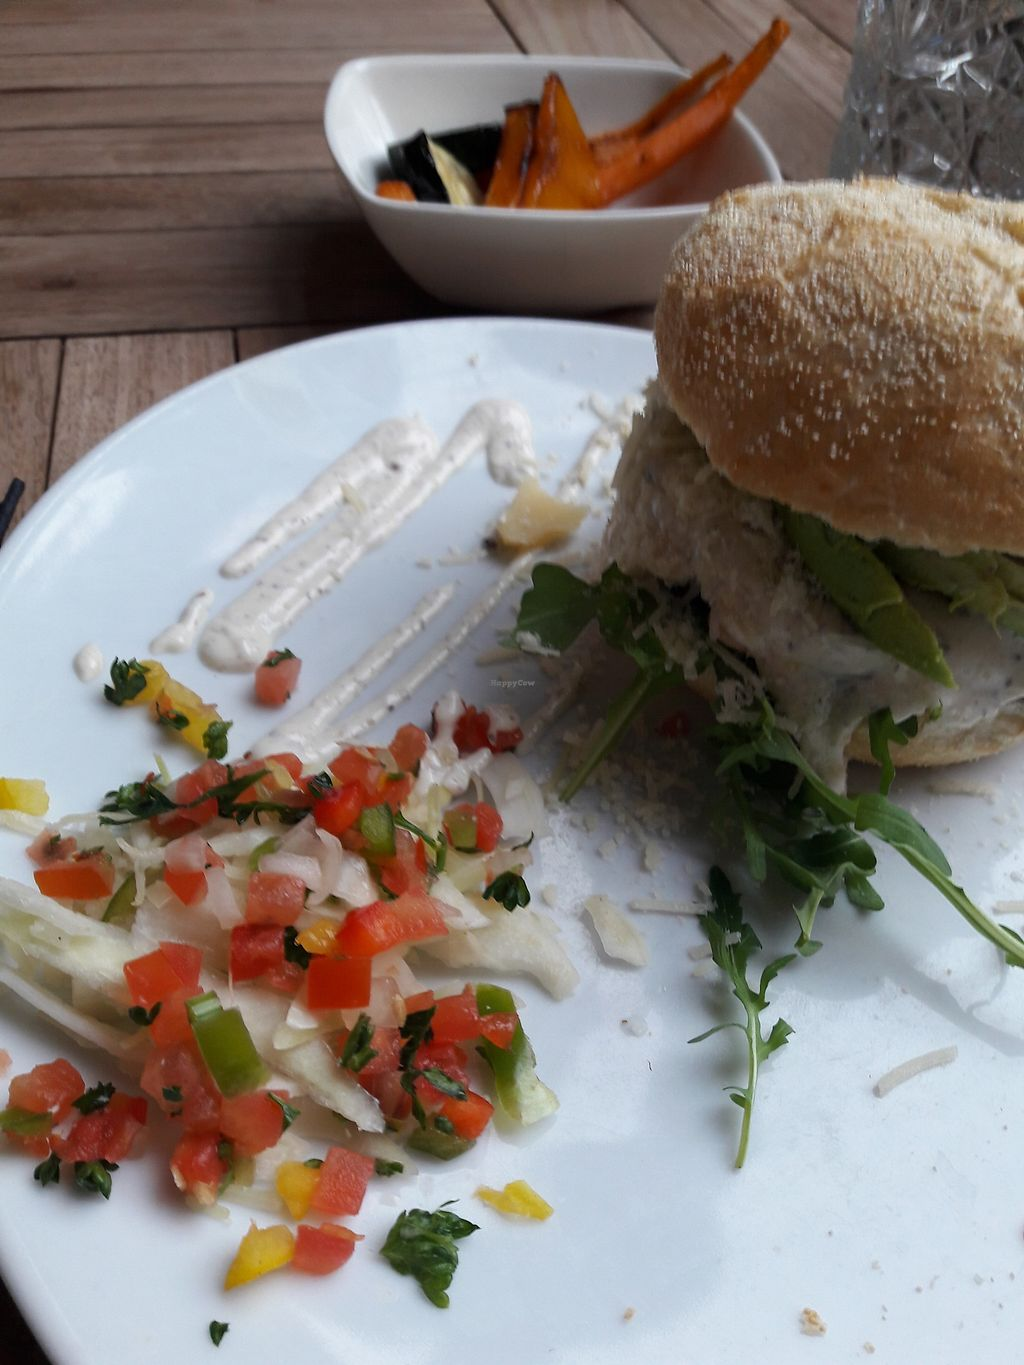 """Photo of Wieck  by <a href=""""/members/profile/Julia_NL"""">Julia_NL</a> <br/>Burger and grilled veggies on the side <br/> November 12, 2017  - <a href='/contact/abuse/image/103152/324832'>Report</a>"""